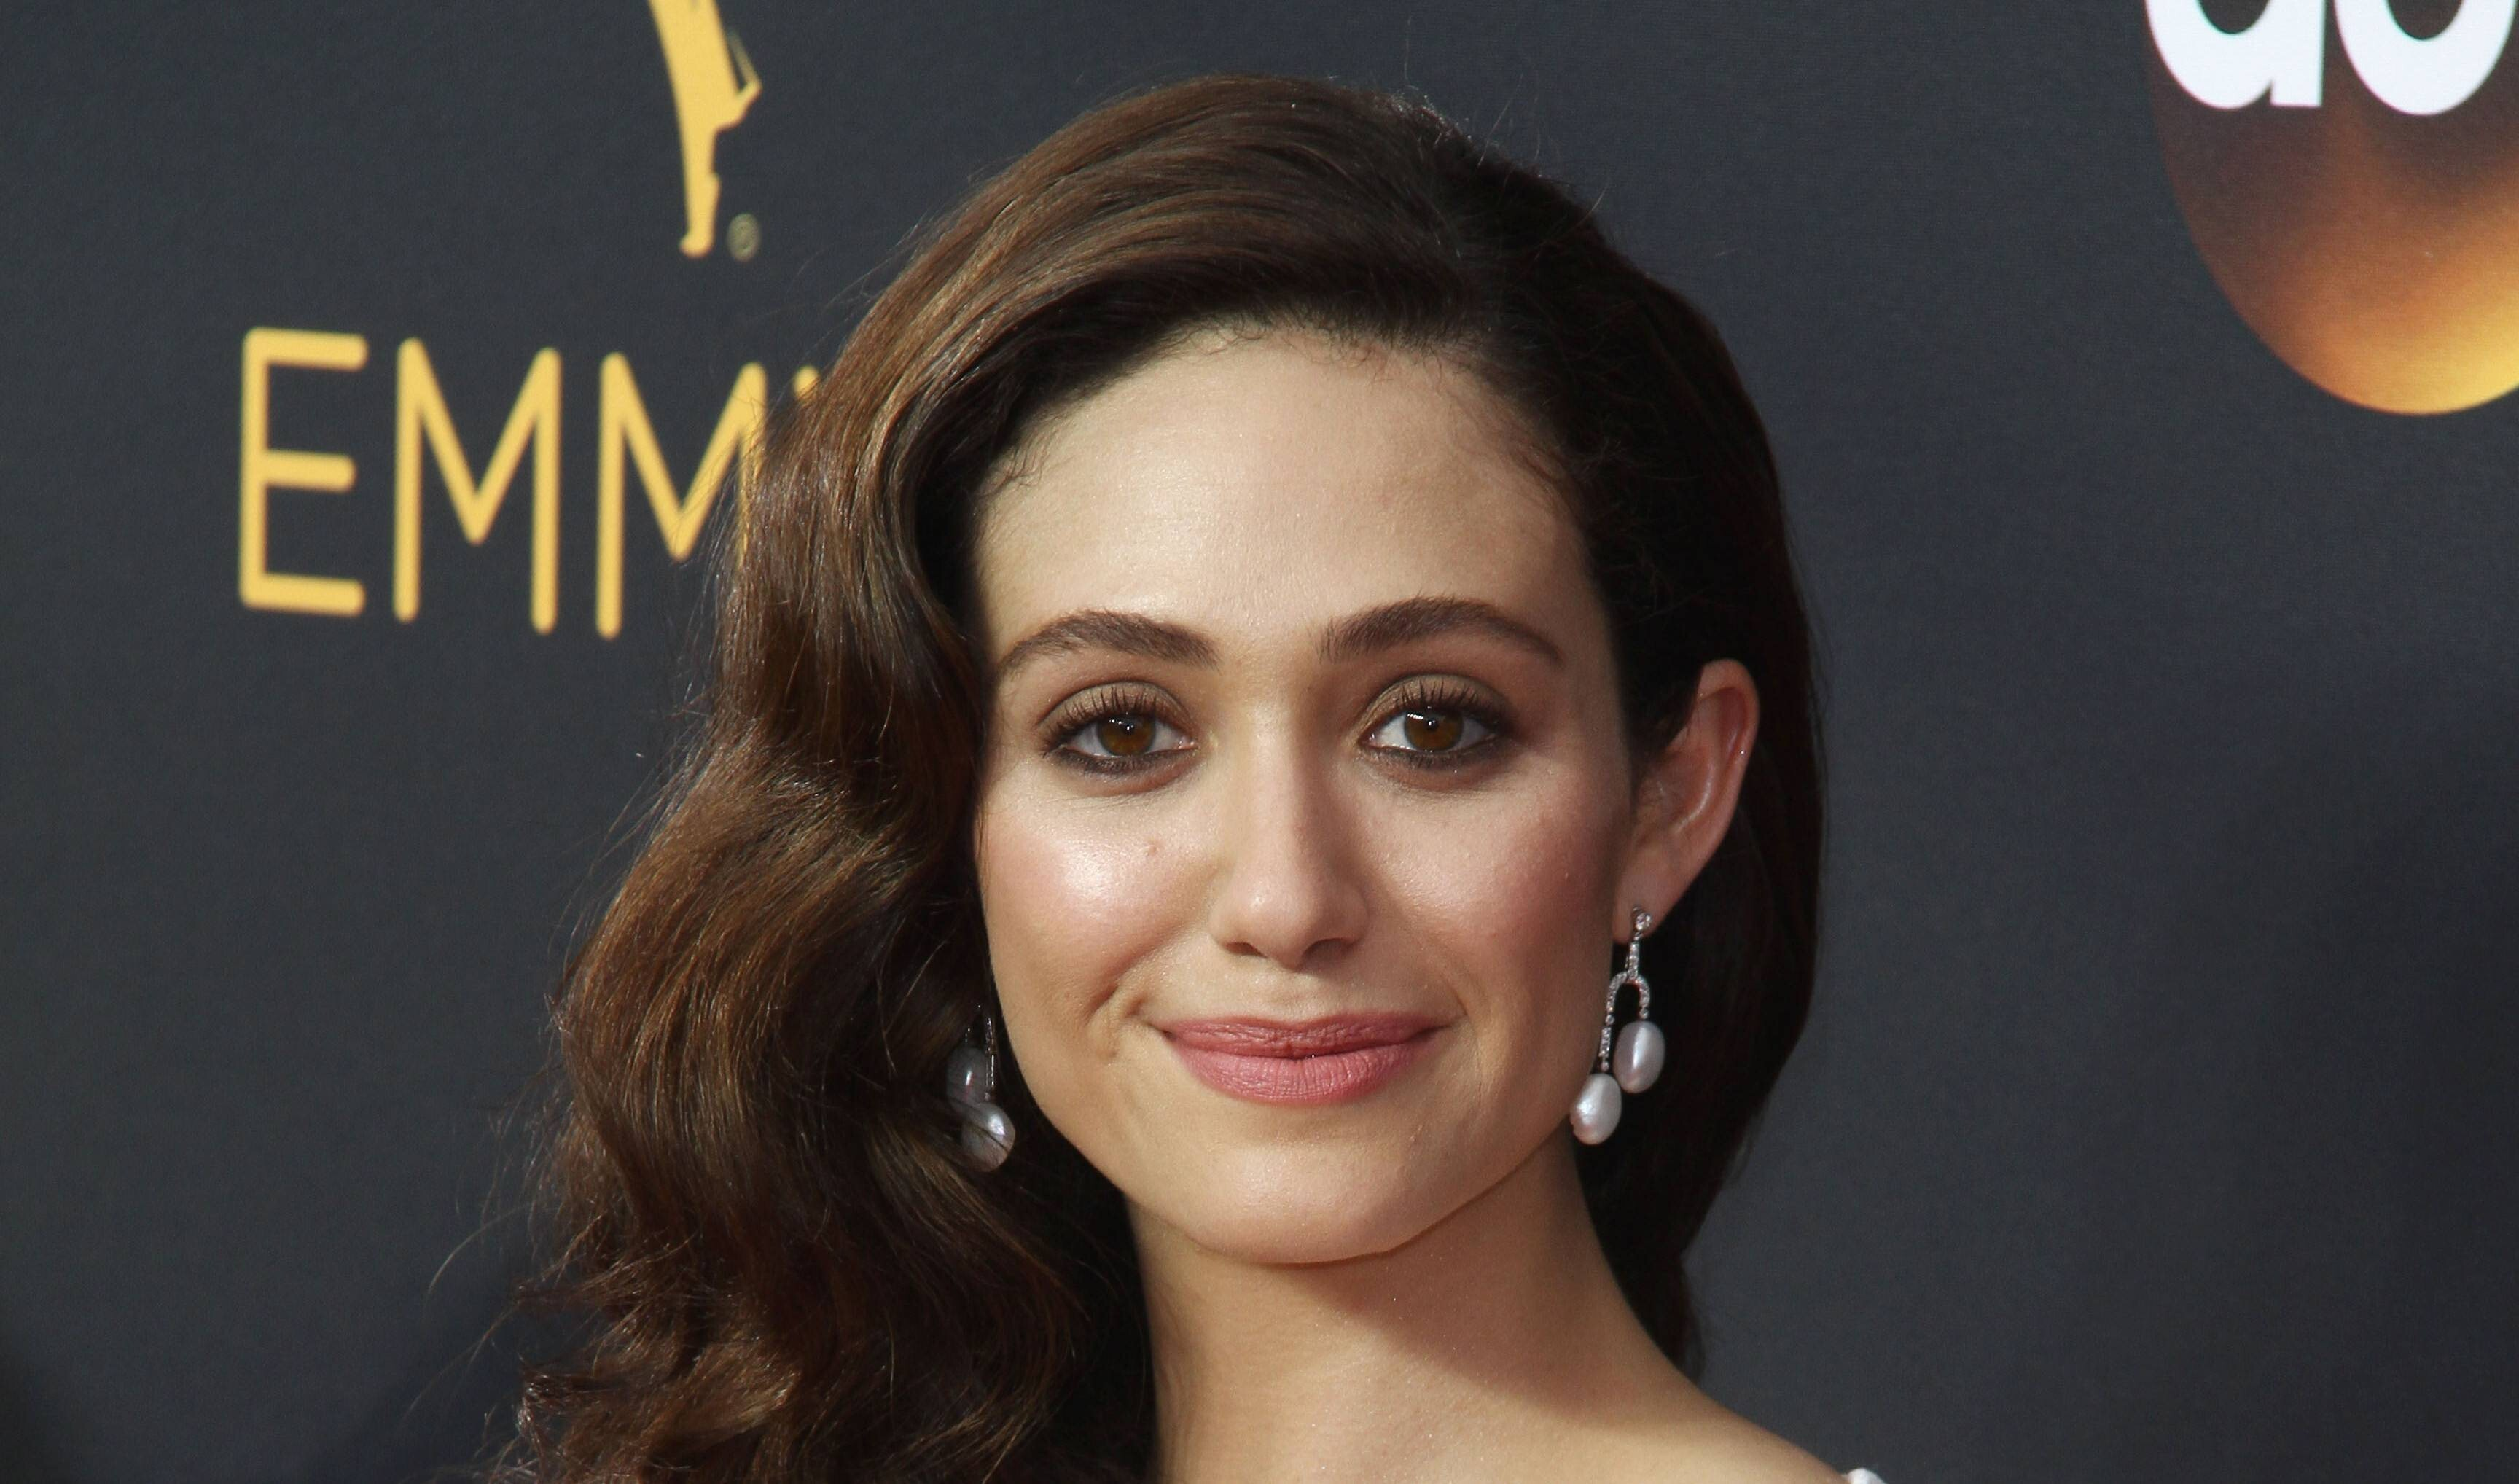 Emmy Rossum Hollywood Actress Hd Wallpaper Hd Wallpapers